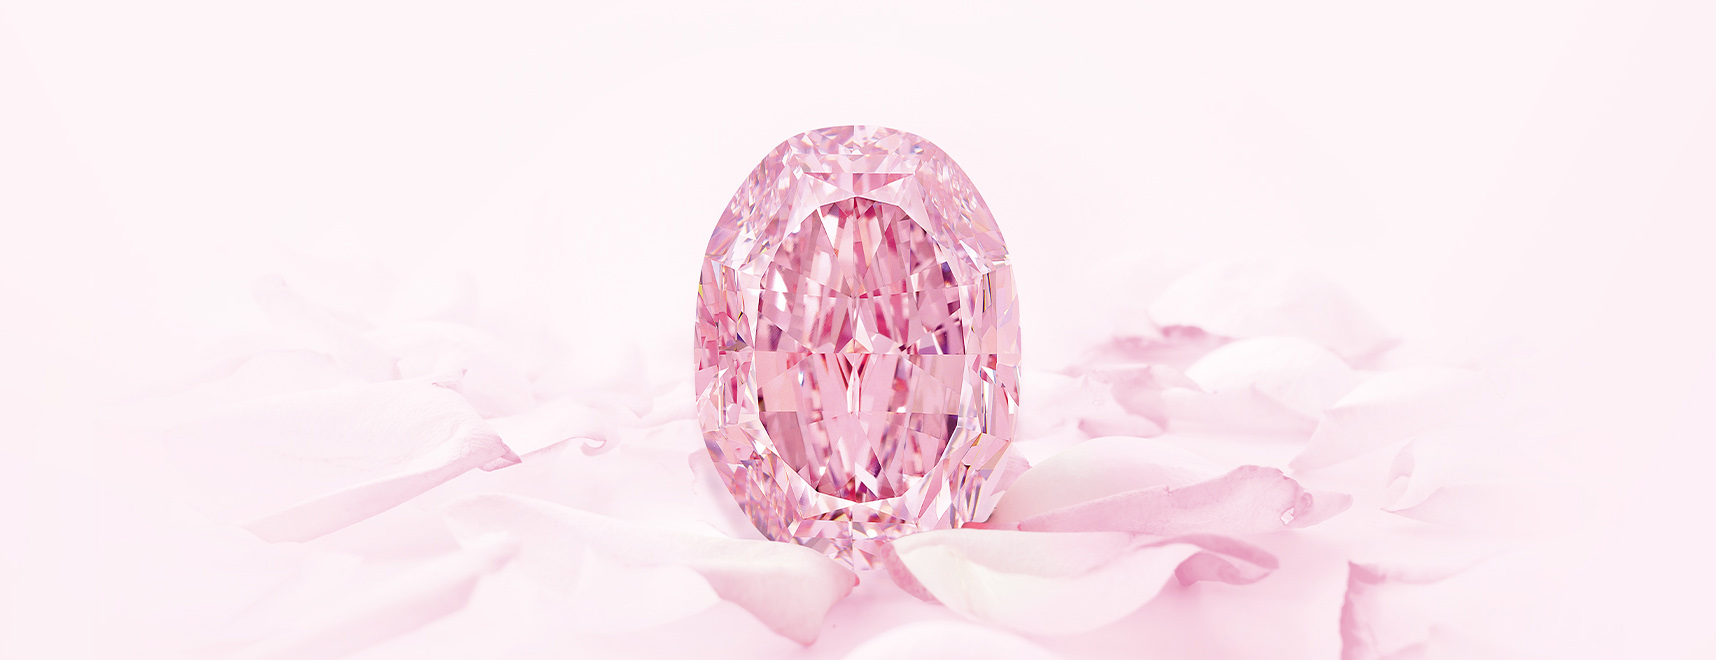 The Spirit of the Rose pink diamond at Sotheby's